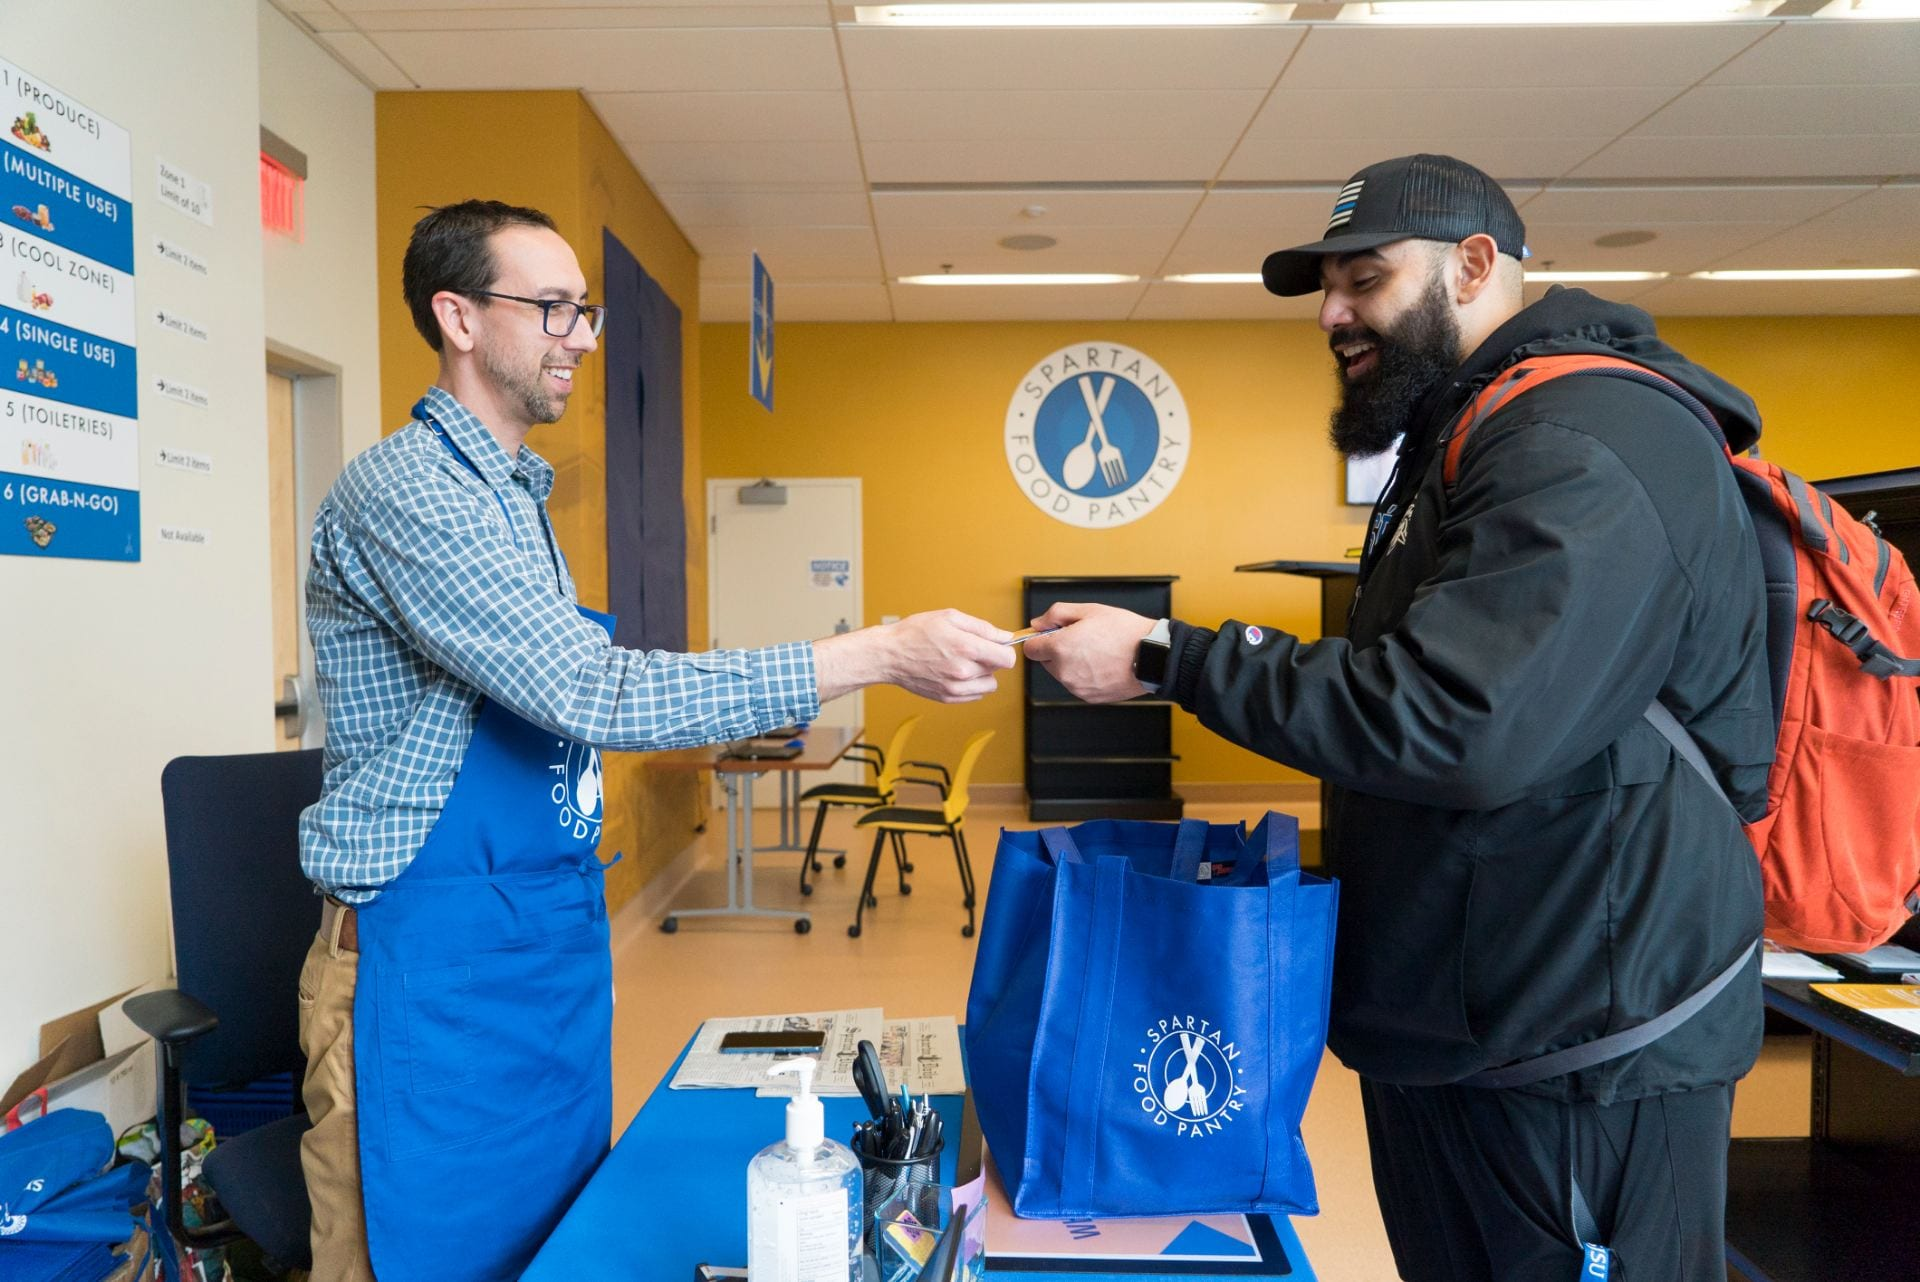 Ben Falter, left, a senior student affairs case manager, helps a student at the Spartan Food Pantry. Photo by Brandon Chew